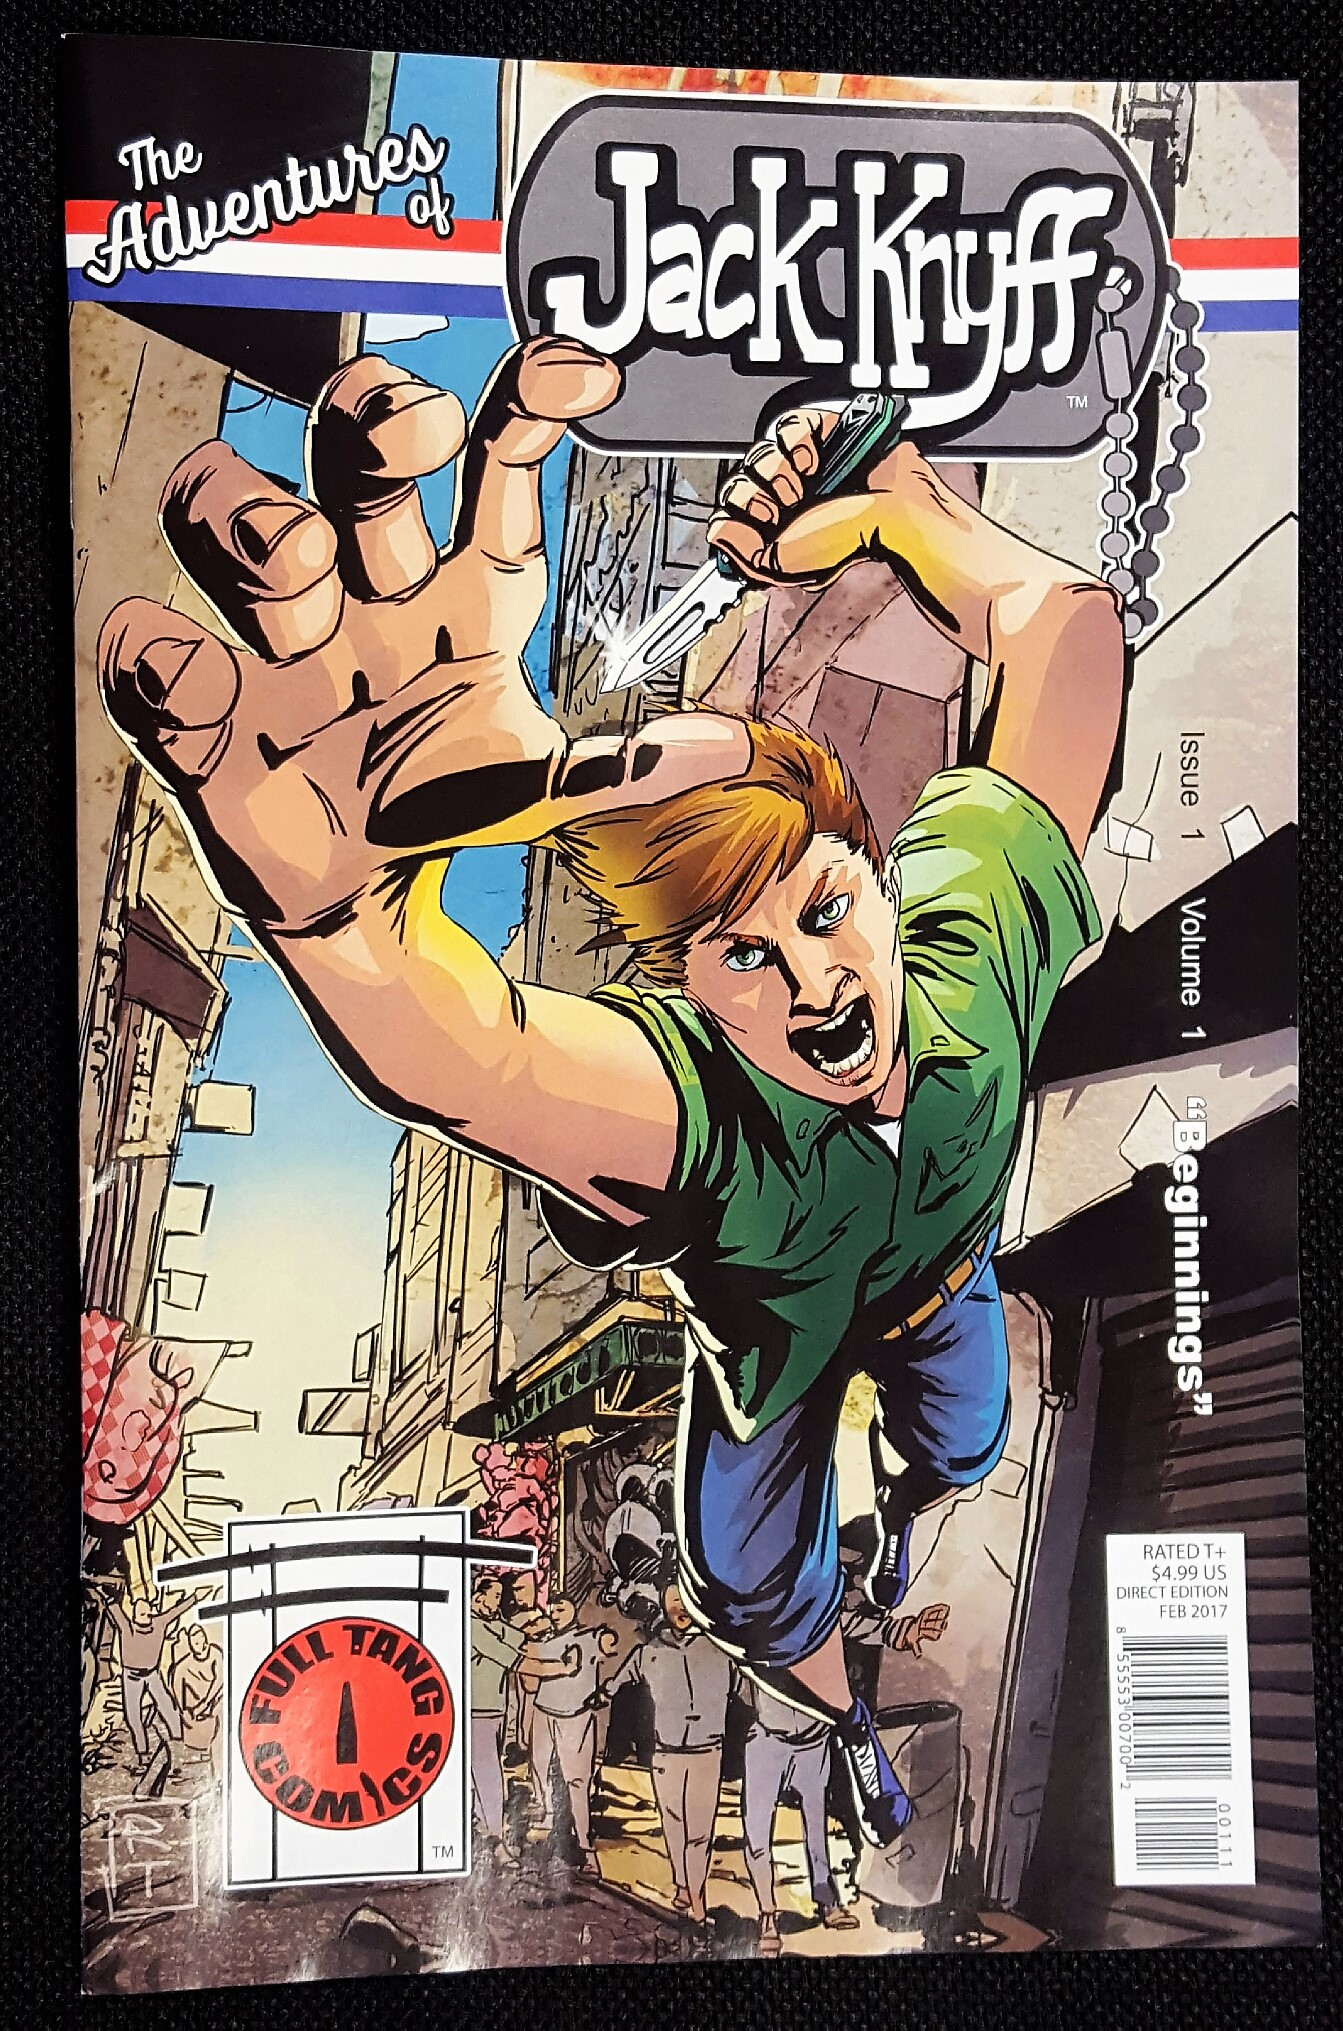 Medford Comic 'The Adventures of Jack Knyff' Issue 1, Vol 1